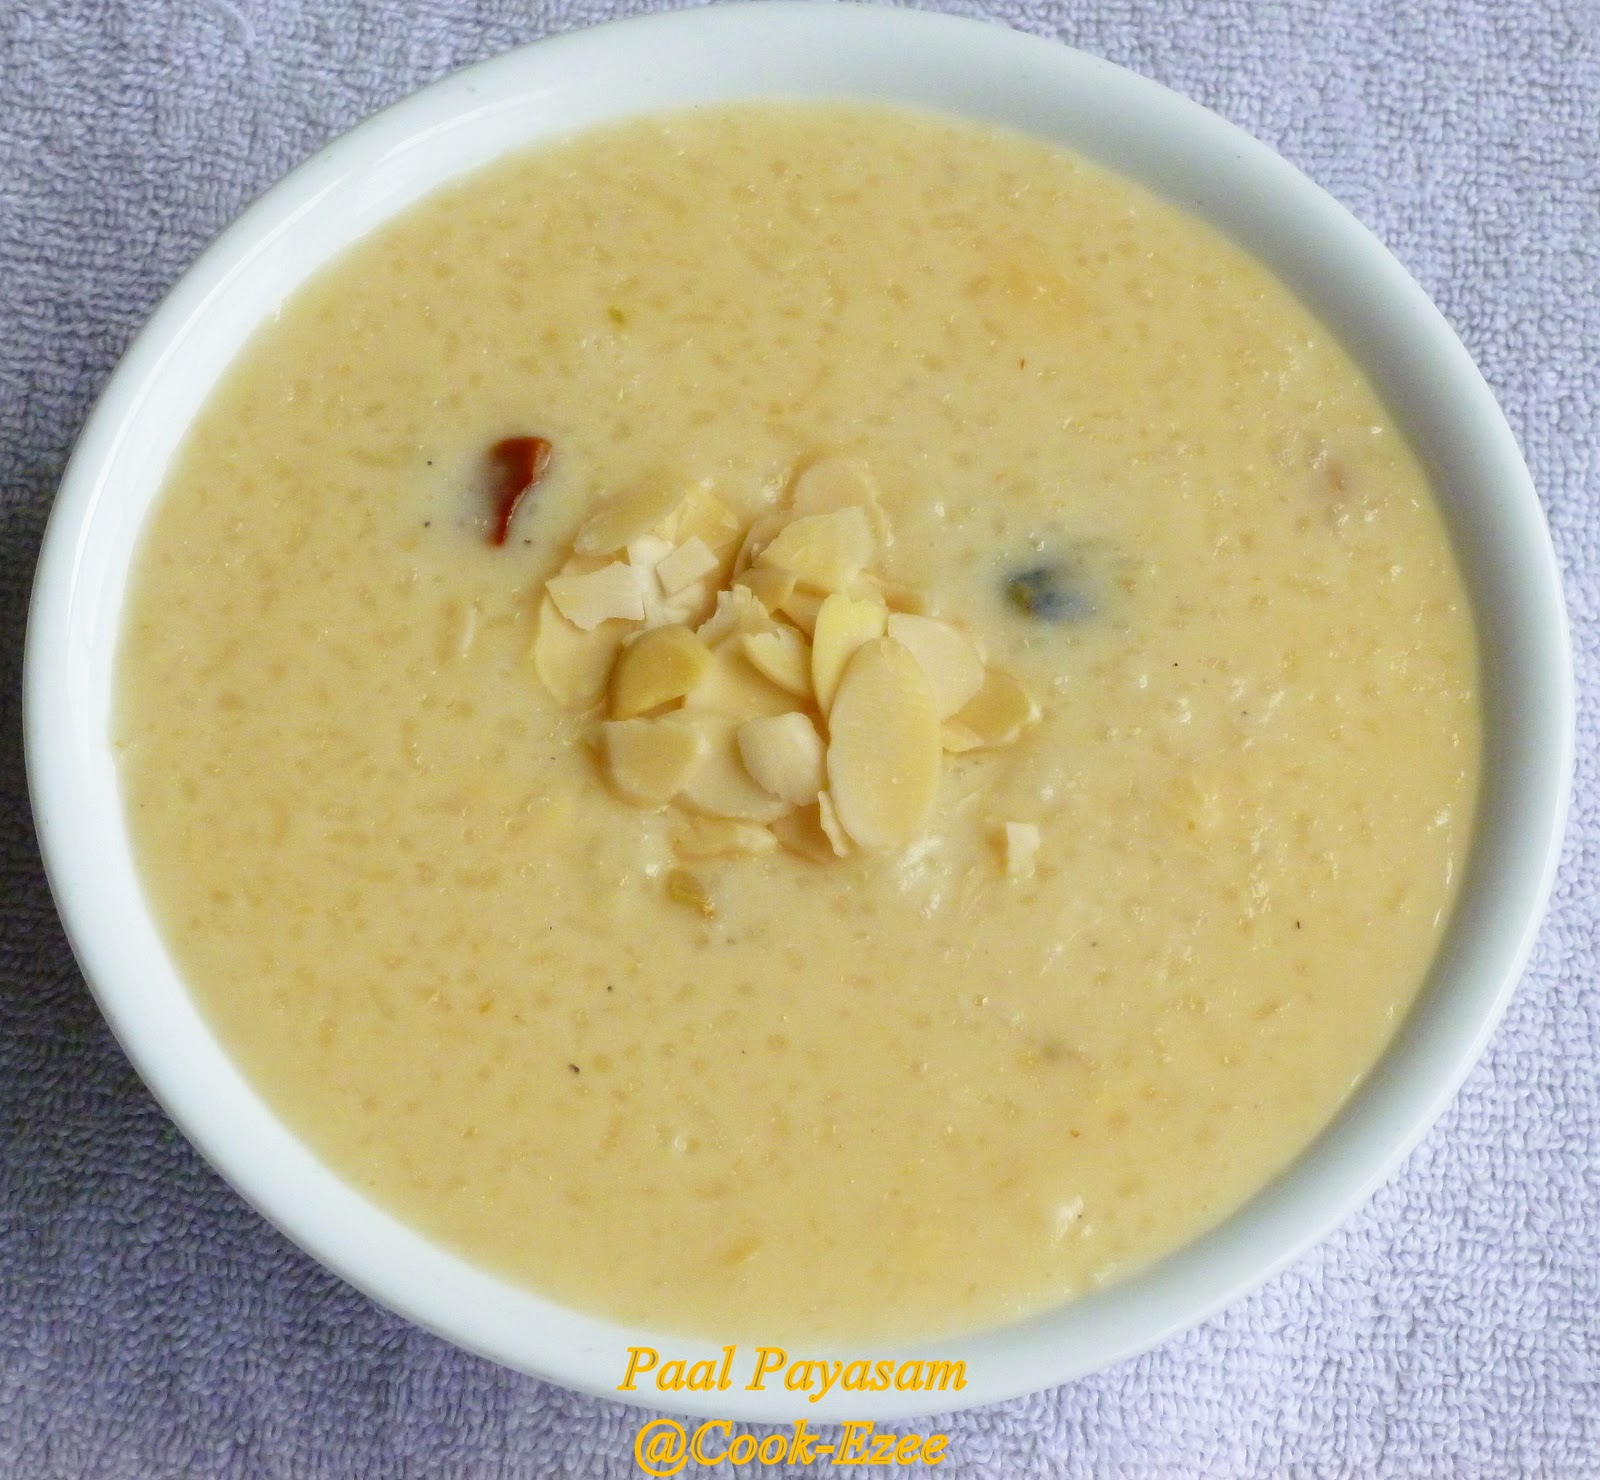 COOK-EZEE: Paal Payasam/Rice Kheer/Rice Pudding and My 100th Post